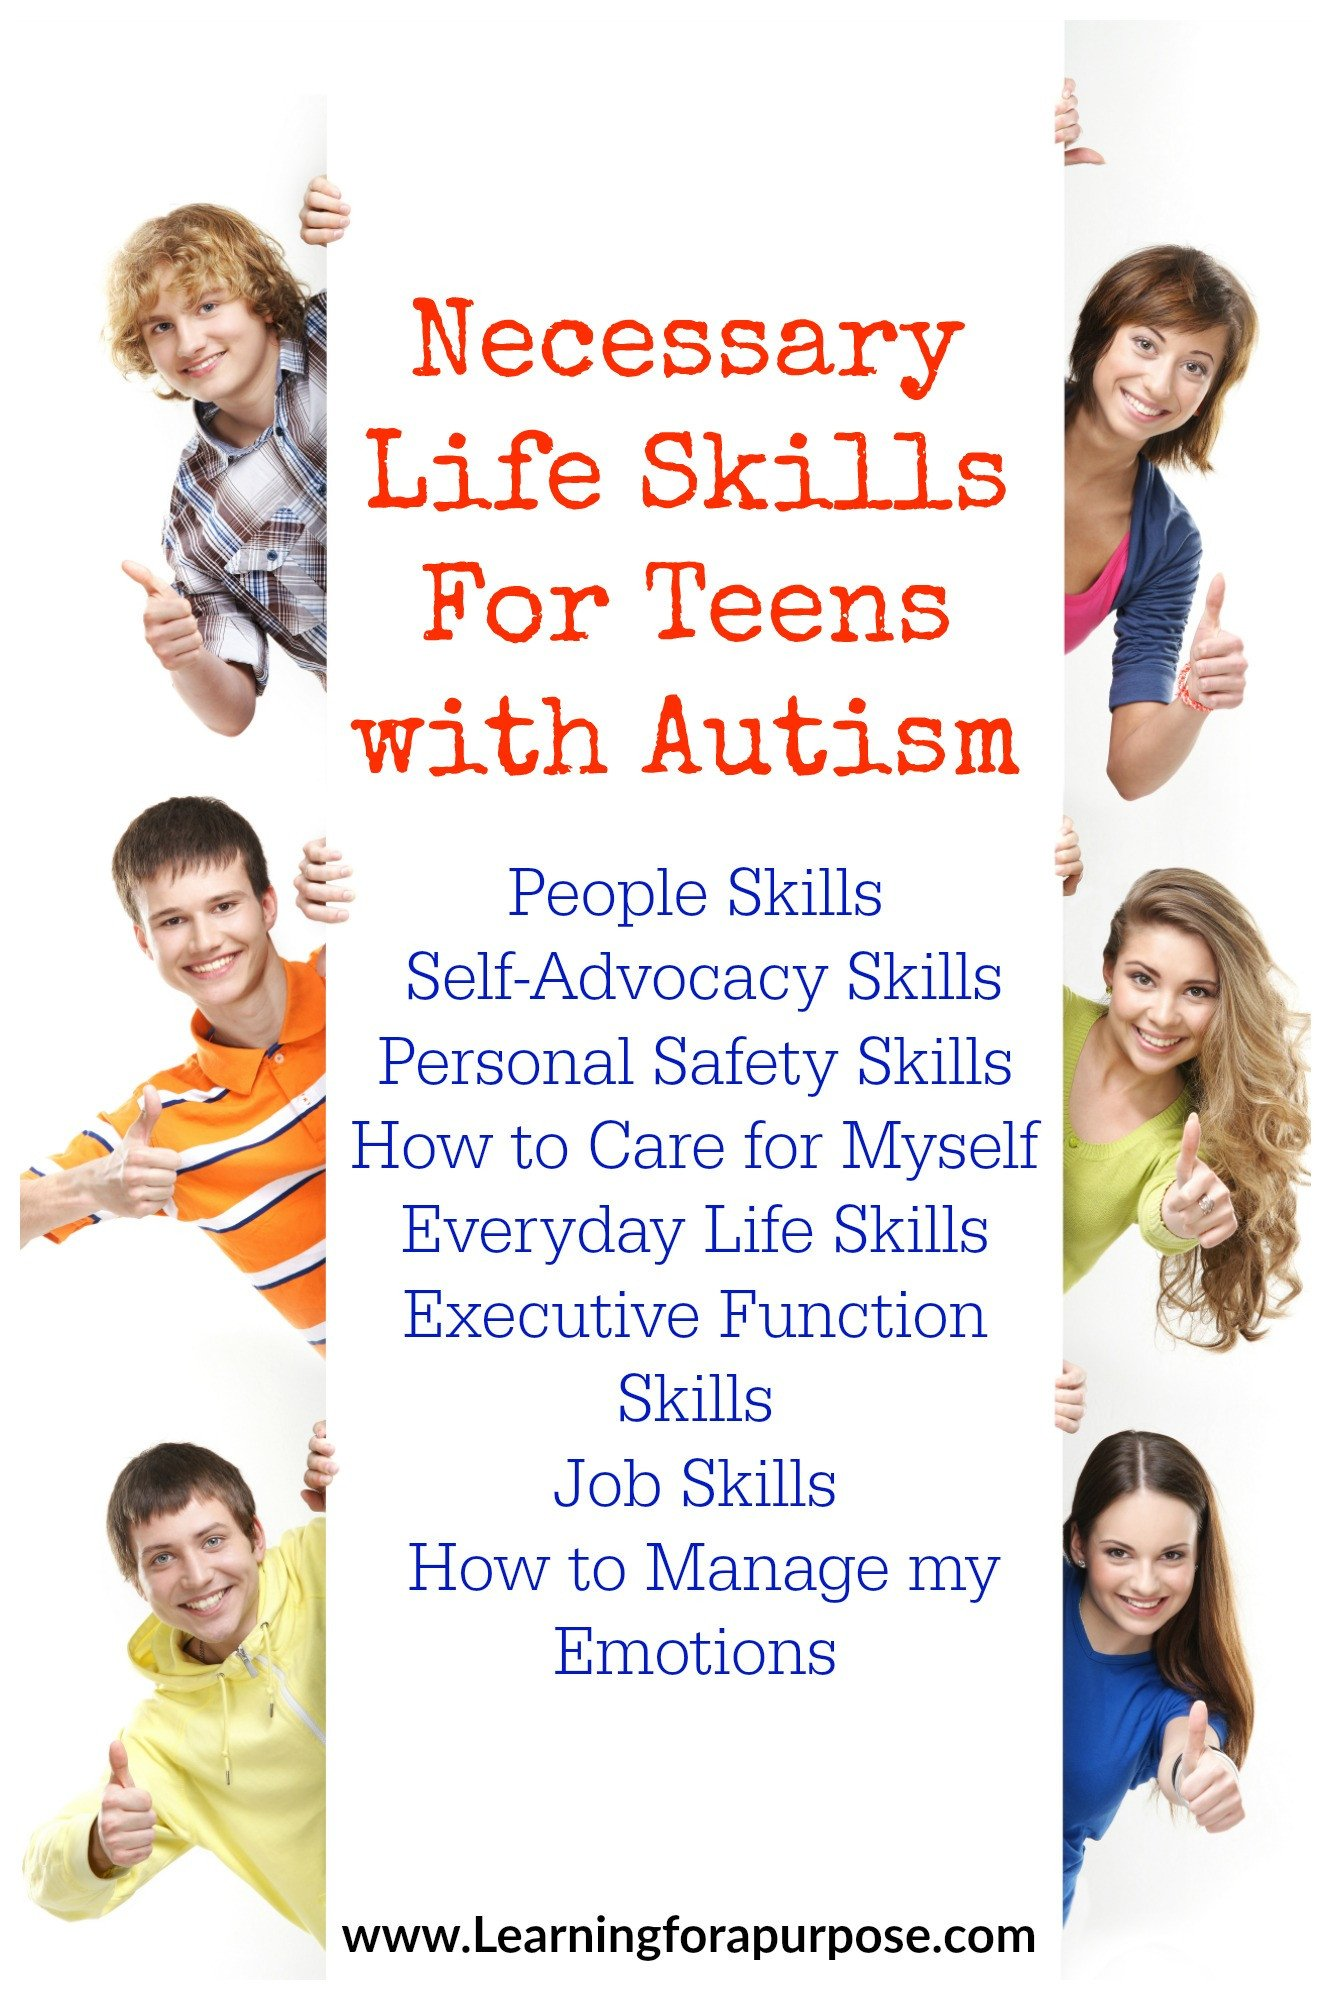 Autism Life Skills Worksheets Necessary Life Skills for Teens with Autism Learning for A